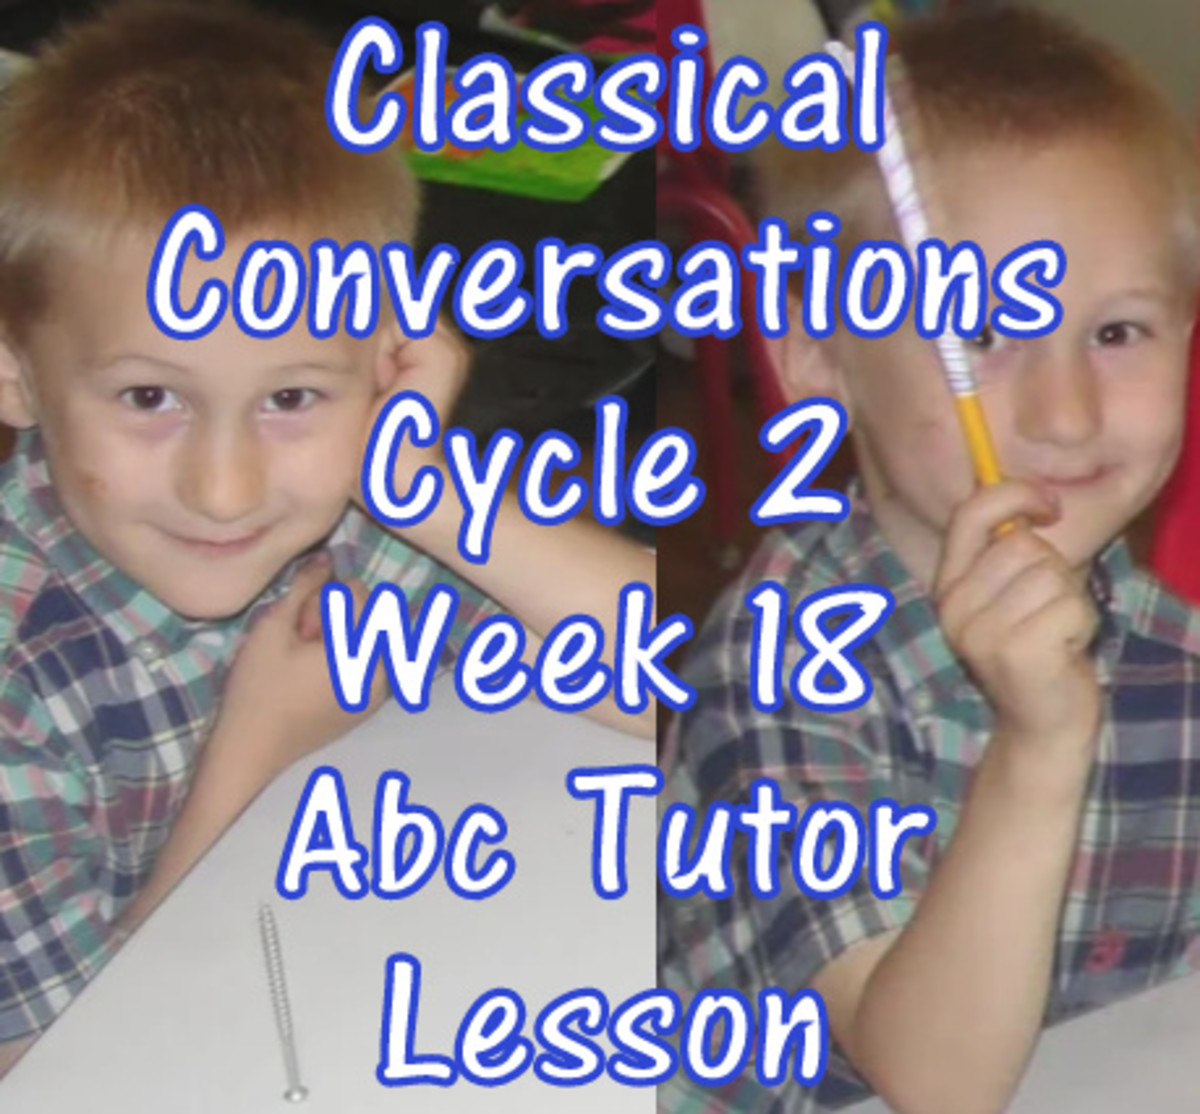 CC Cycle 2 Week 18 Lesson for Abecedarian Tutors